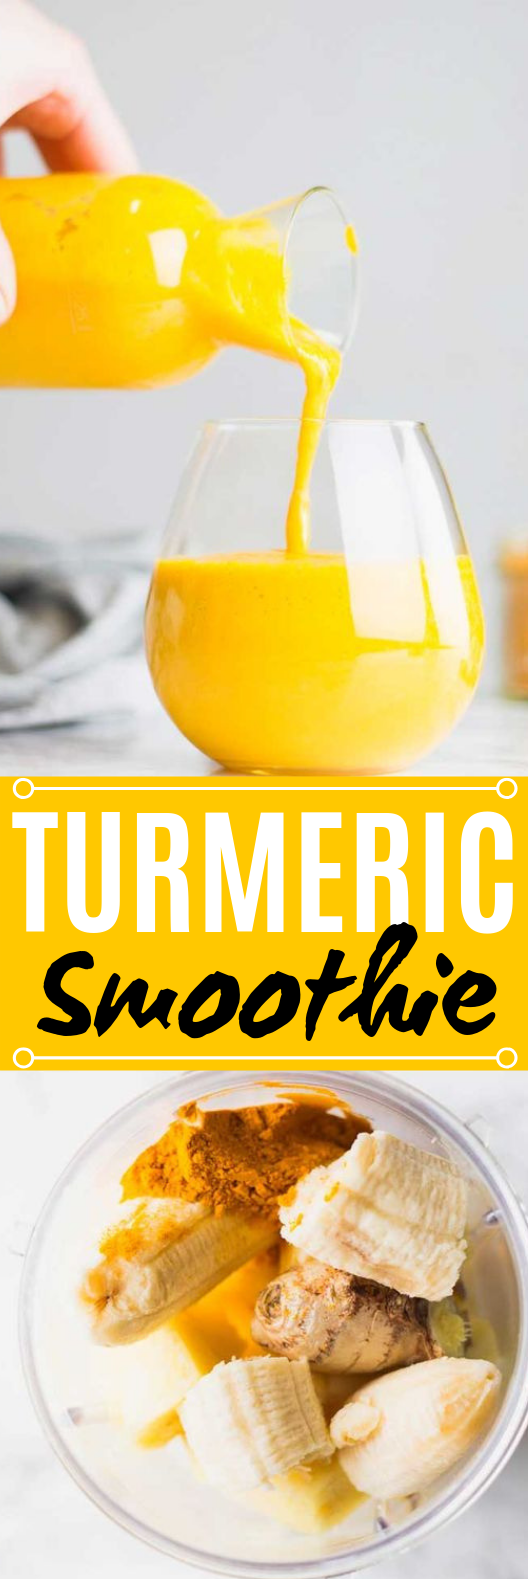 Turmeric Smoothie #drinks #healthy